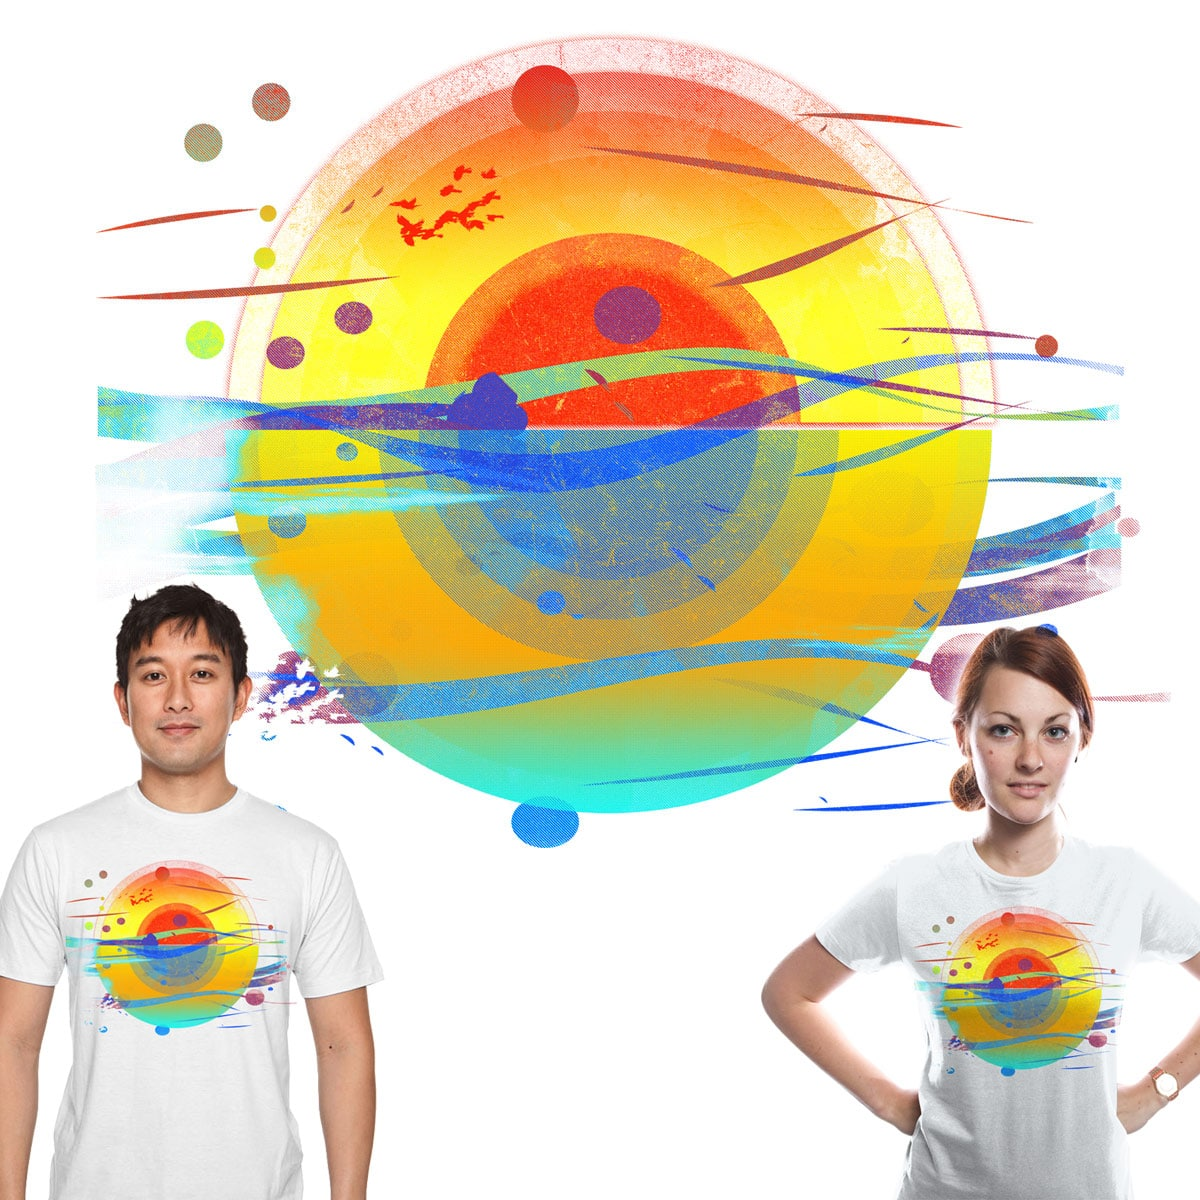 here comes the sun v2 by kharmazero on Threadless